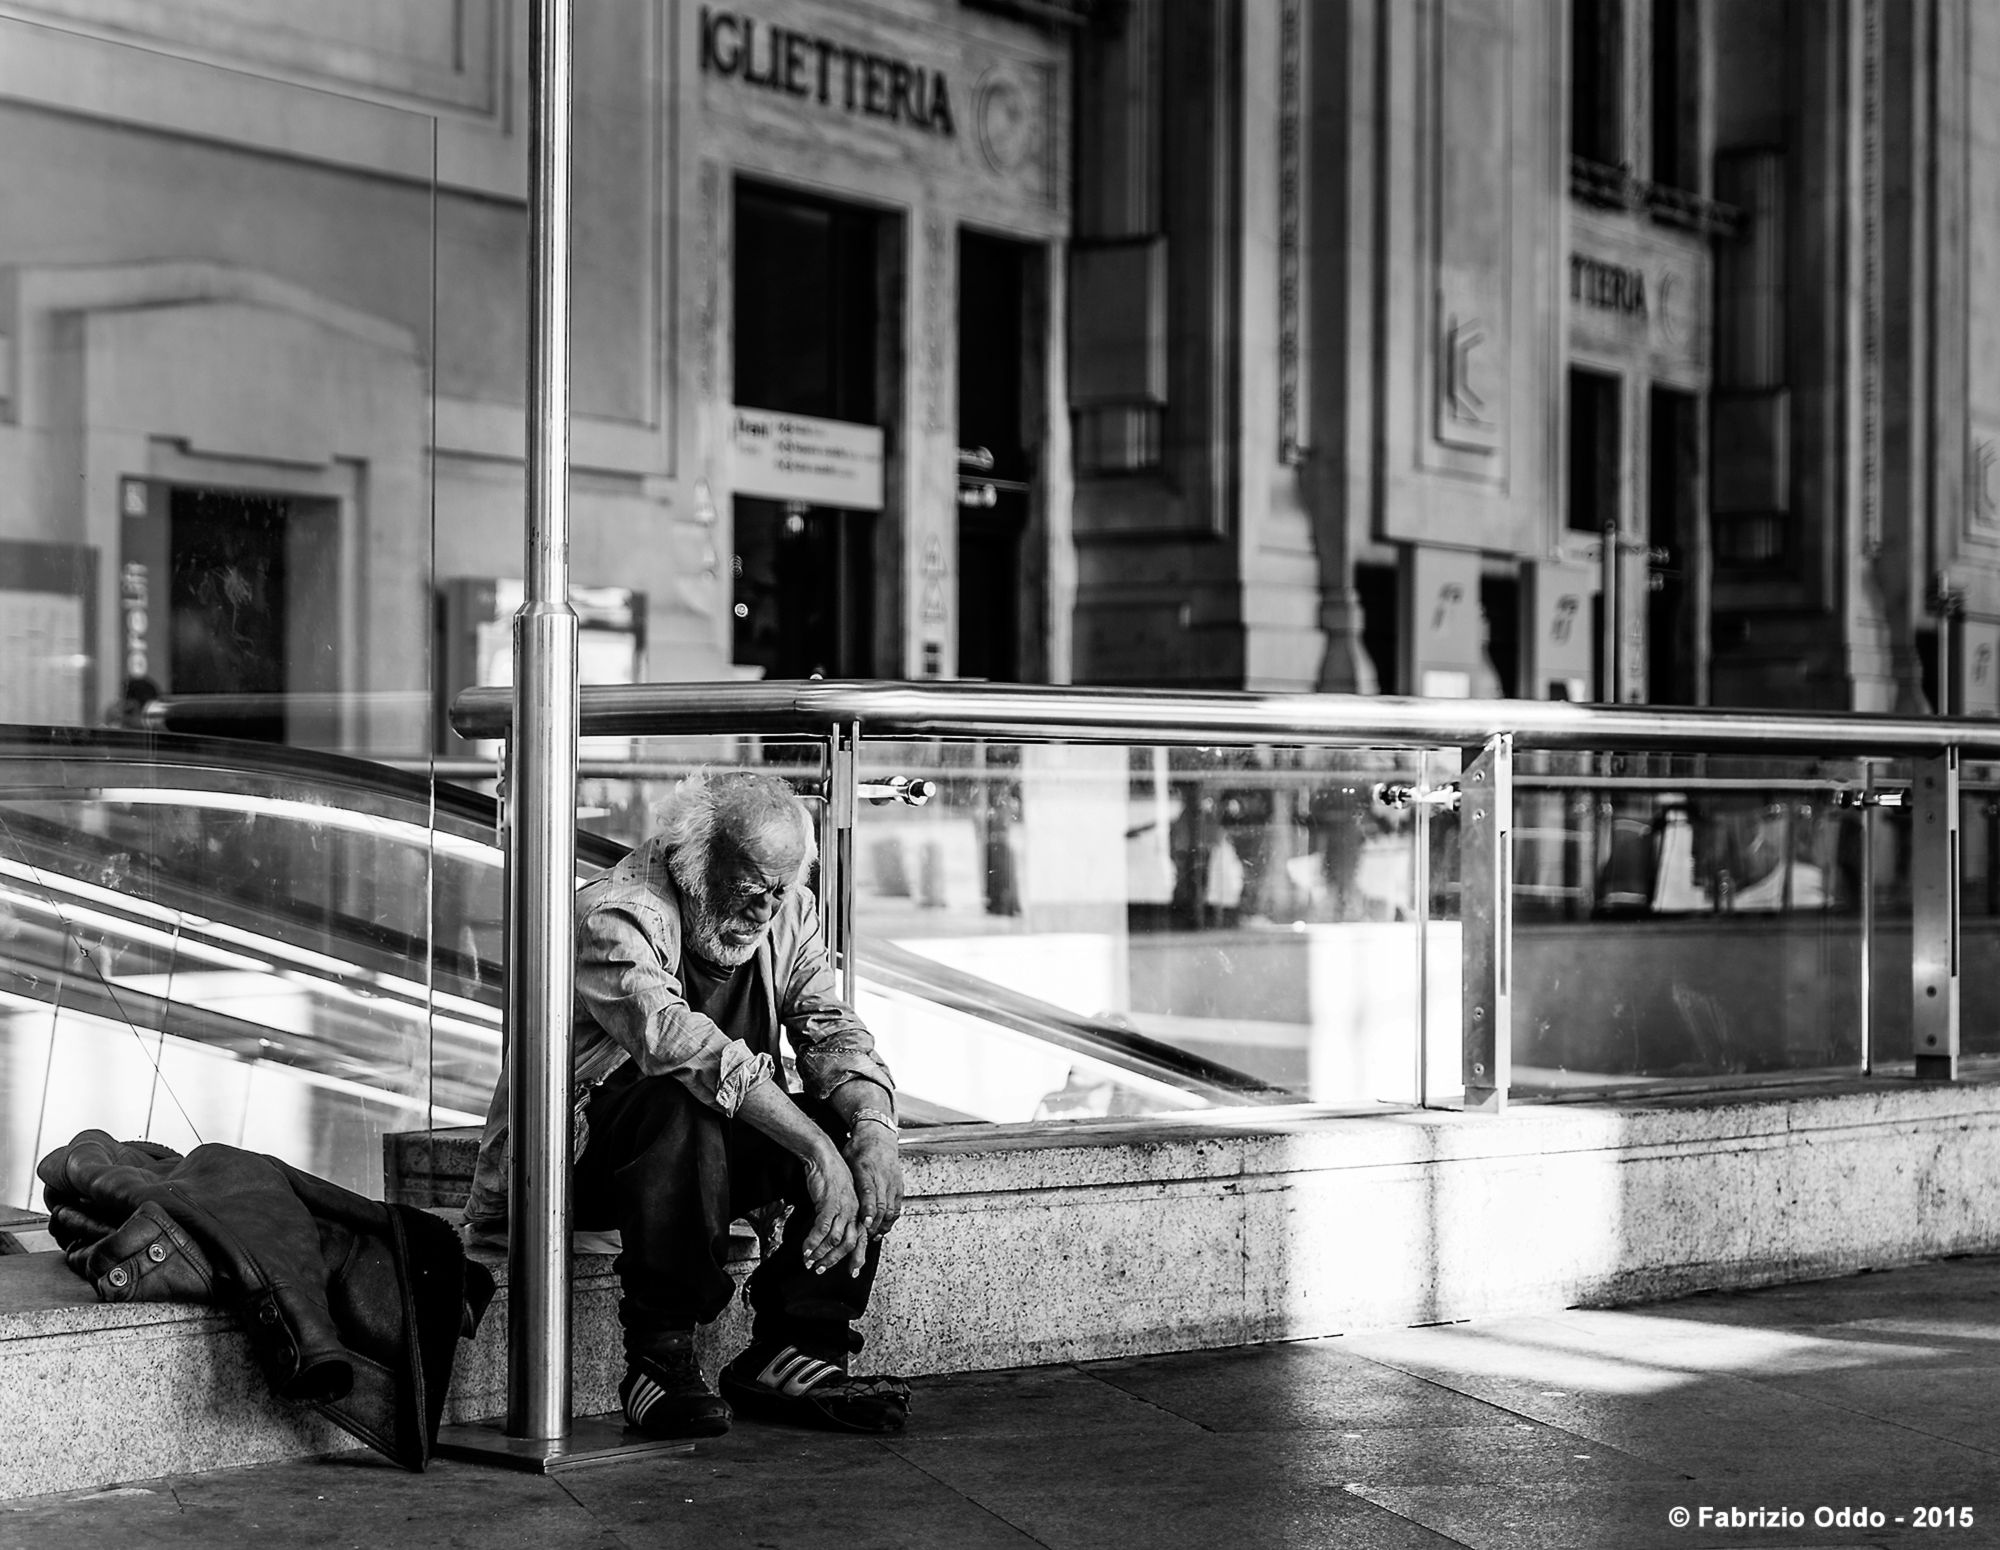 Milano Street Photo - Senza tetto